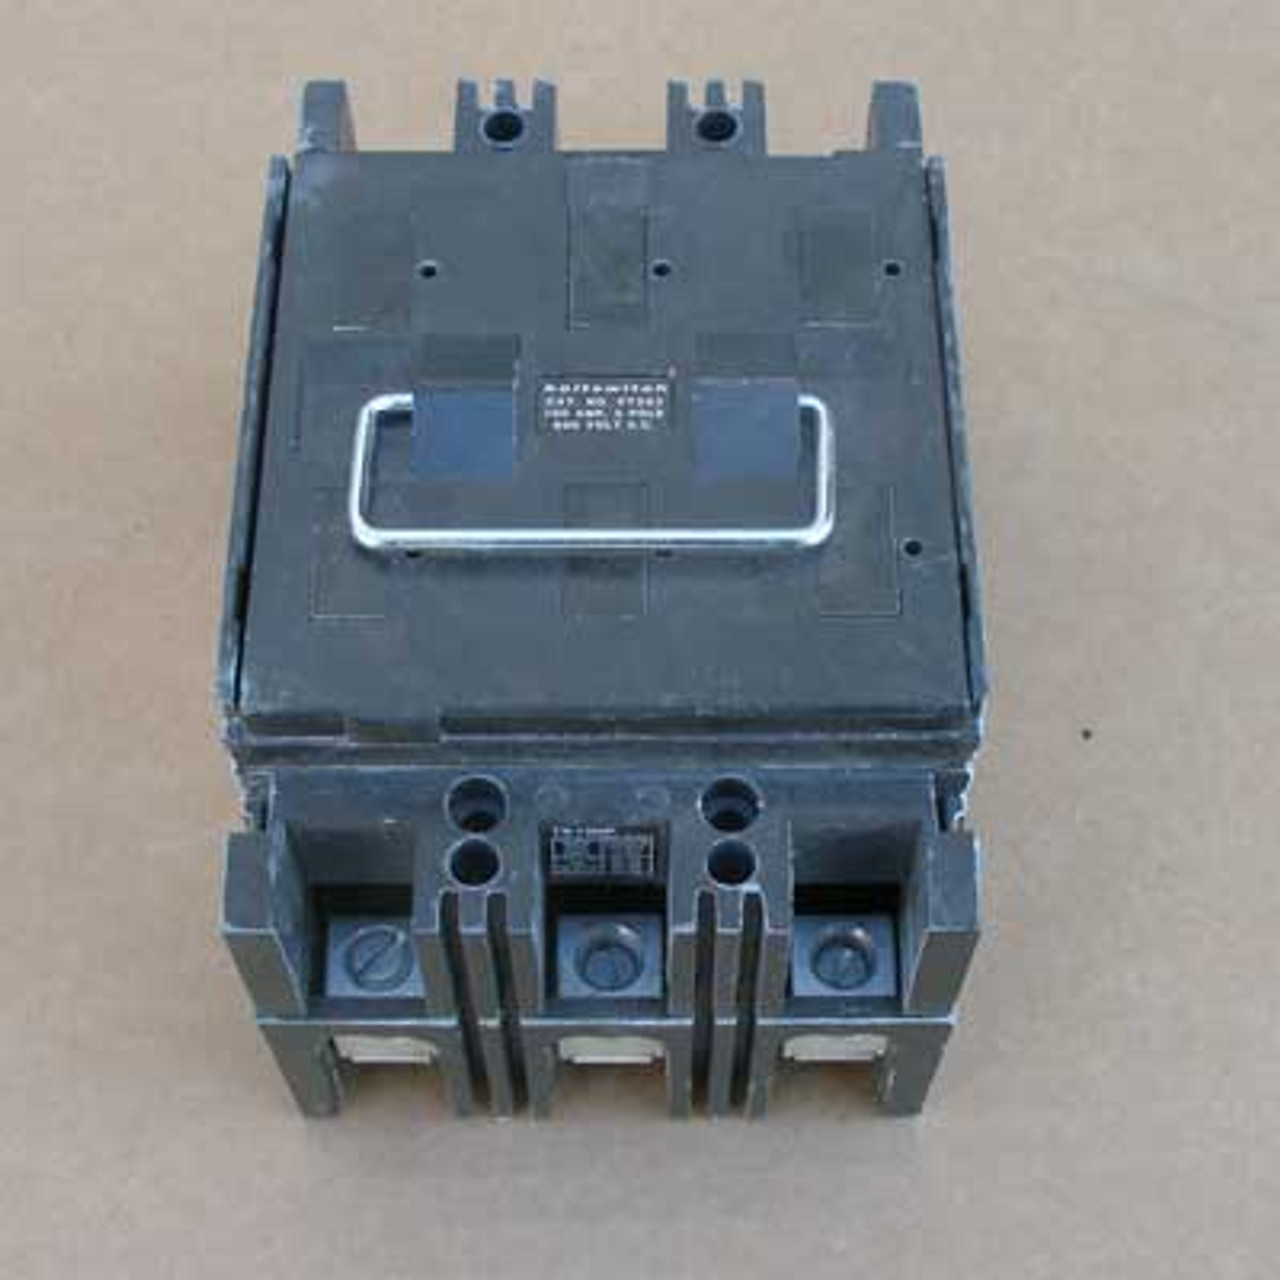 Boltswitch PTL323-2P 2 Pole 100 Amp 240V Pullout Switch - Used